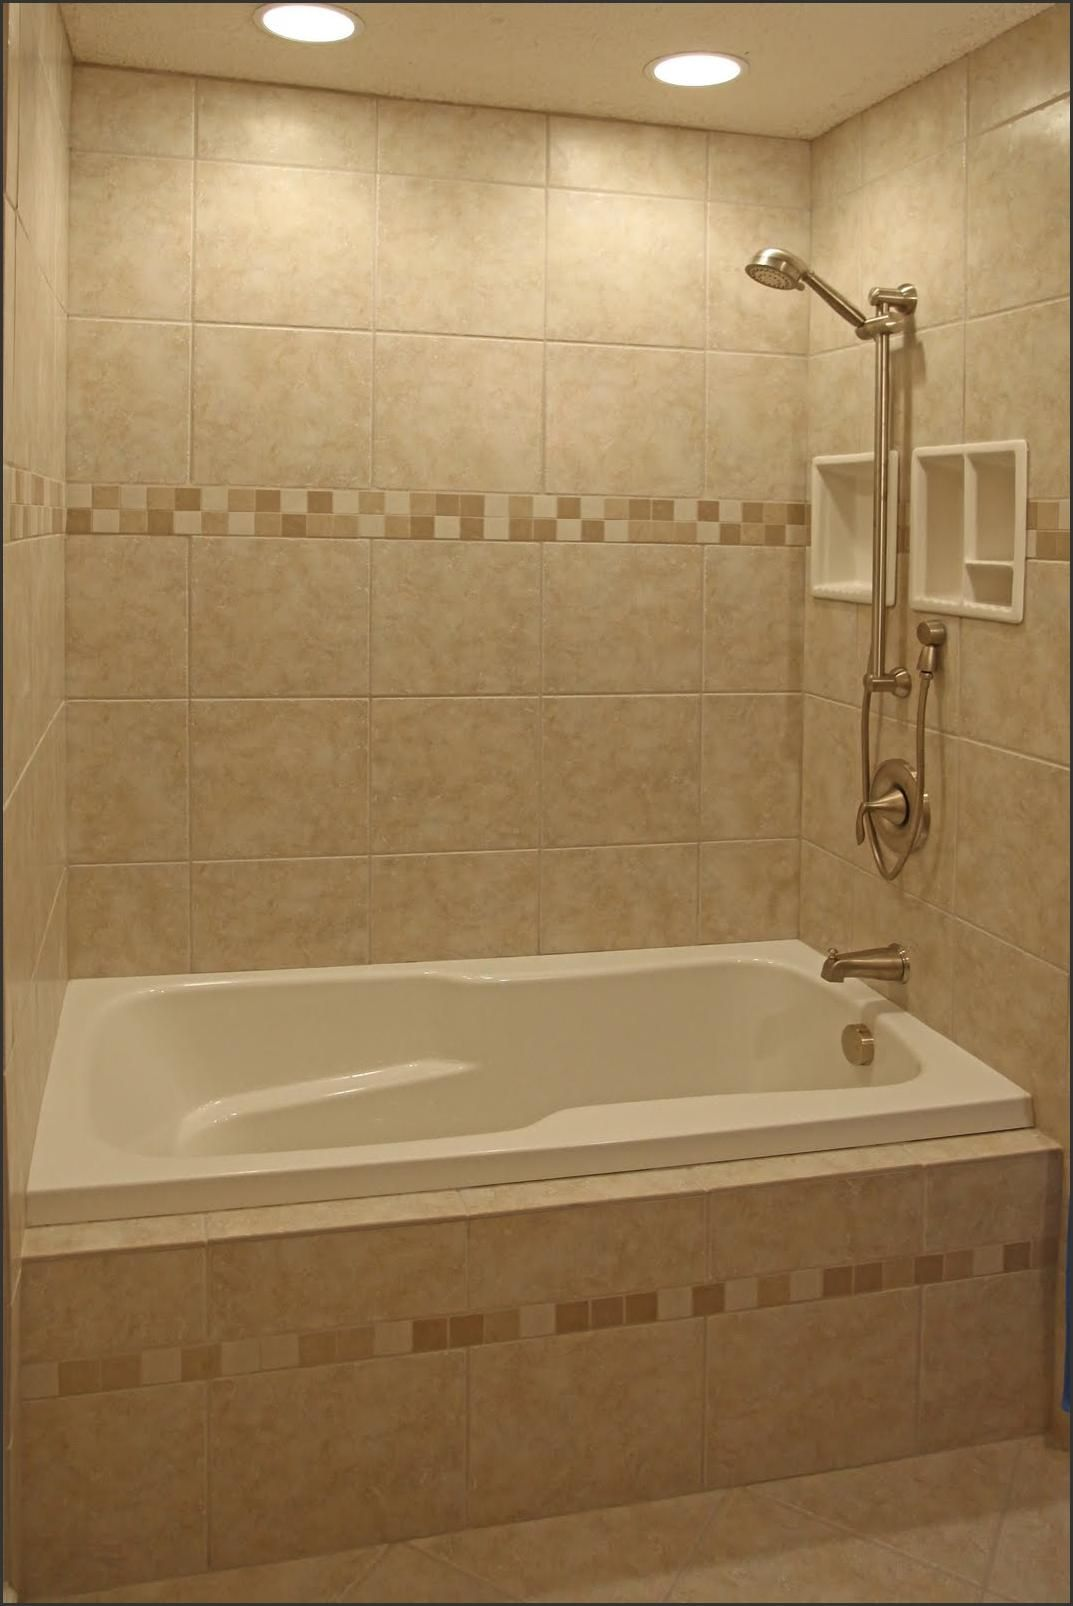 Ceramic tile bathroom shower pictures tiling shower for Ceramic tile patterns for bathroom floors